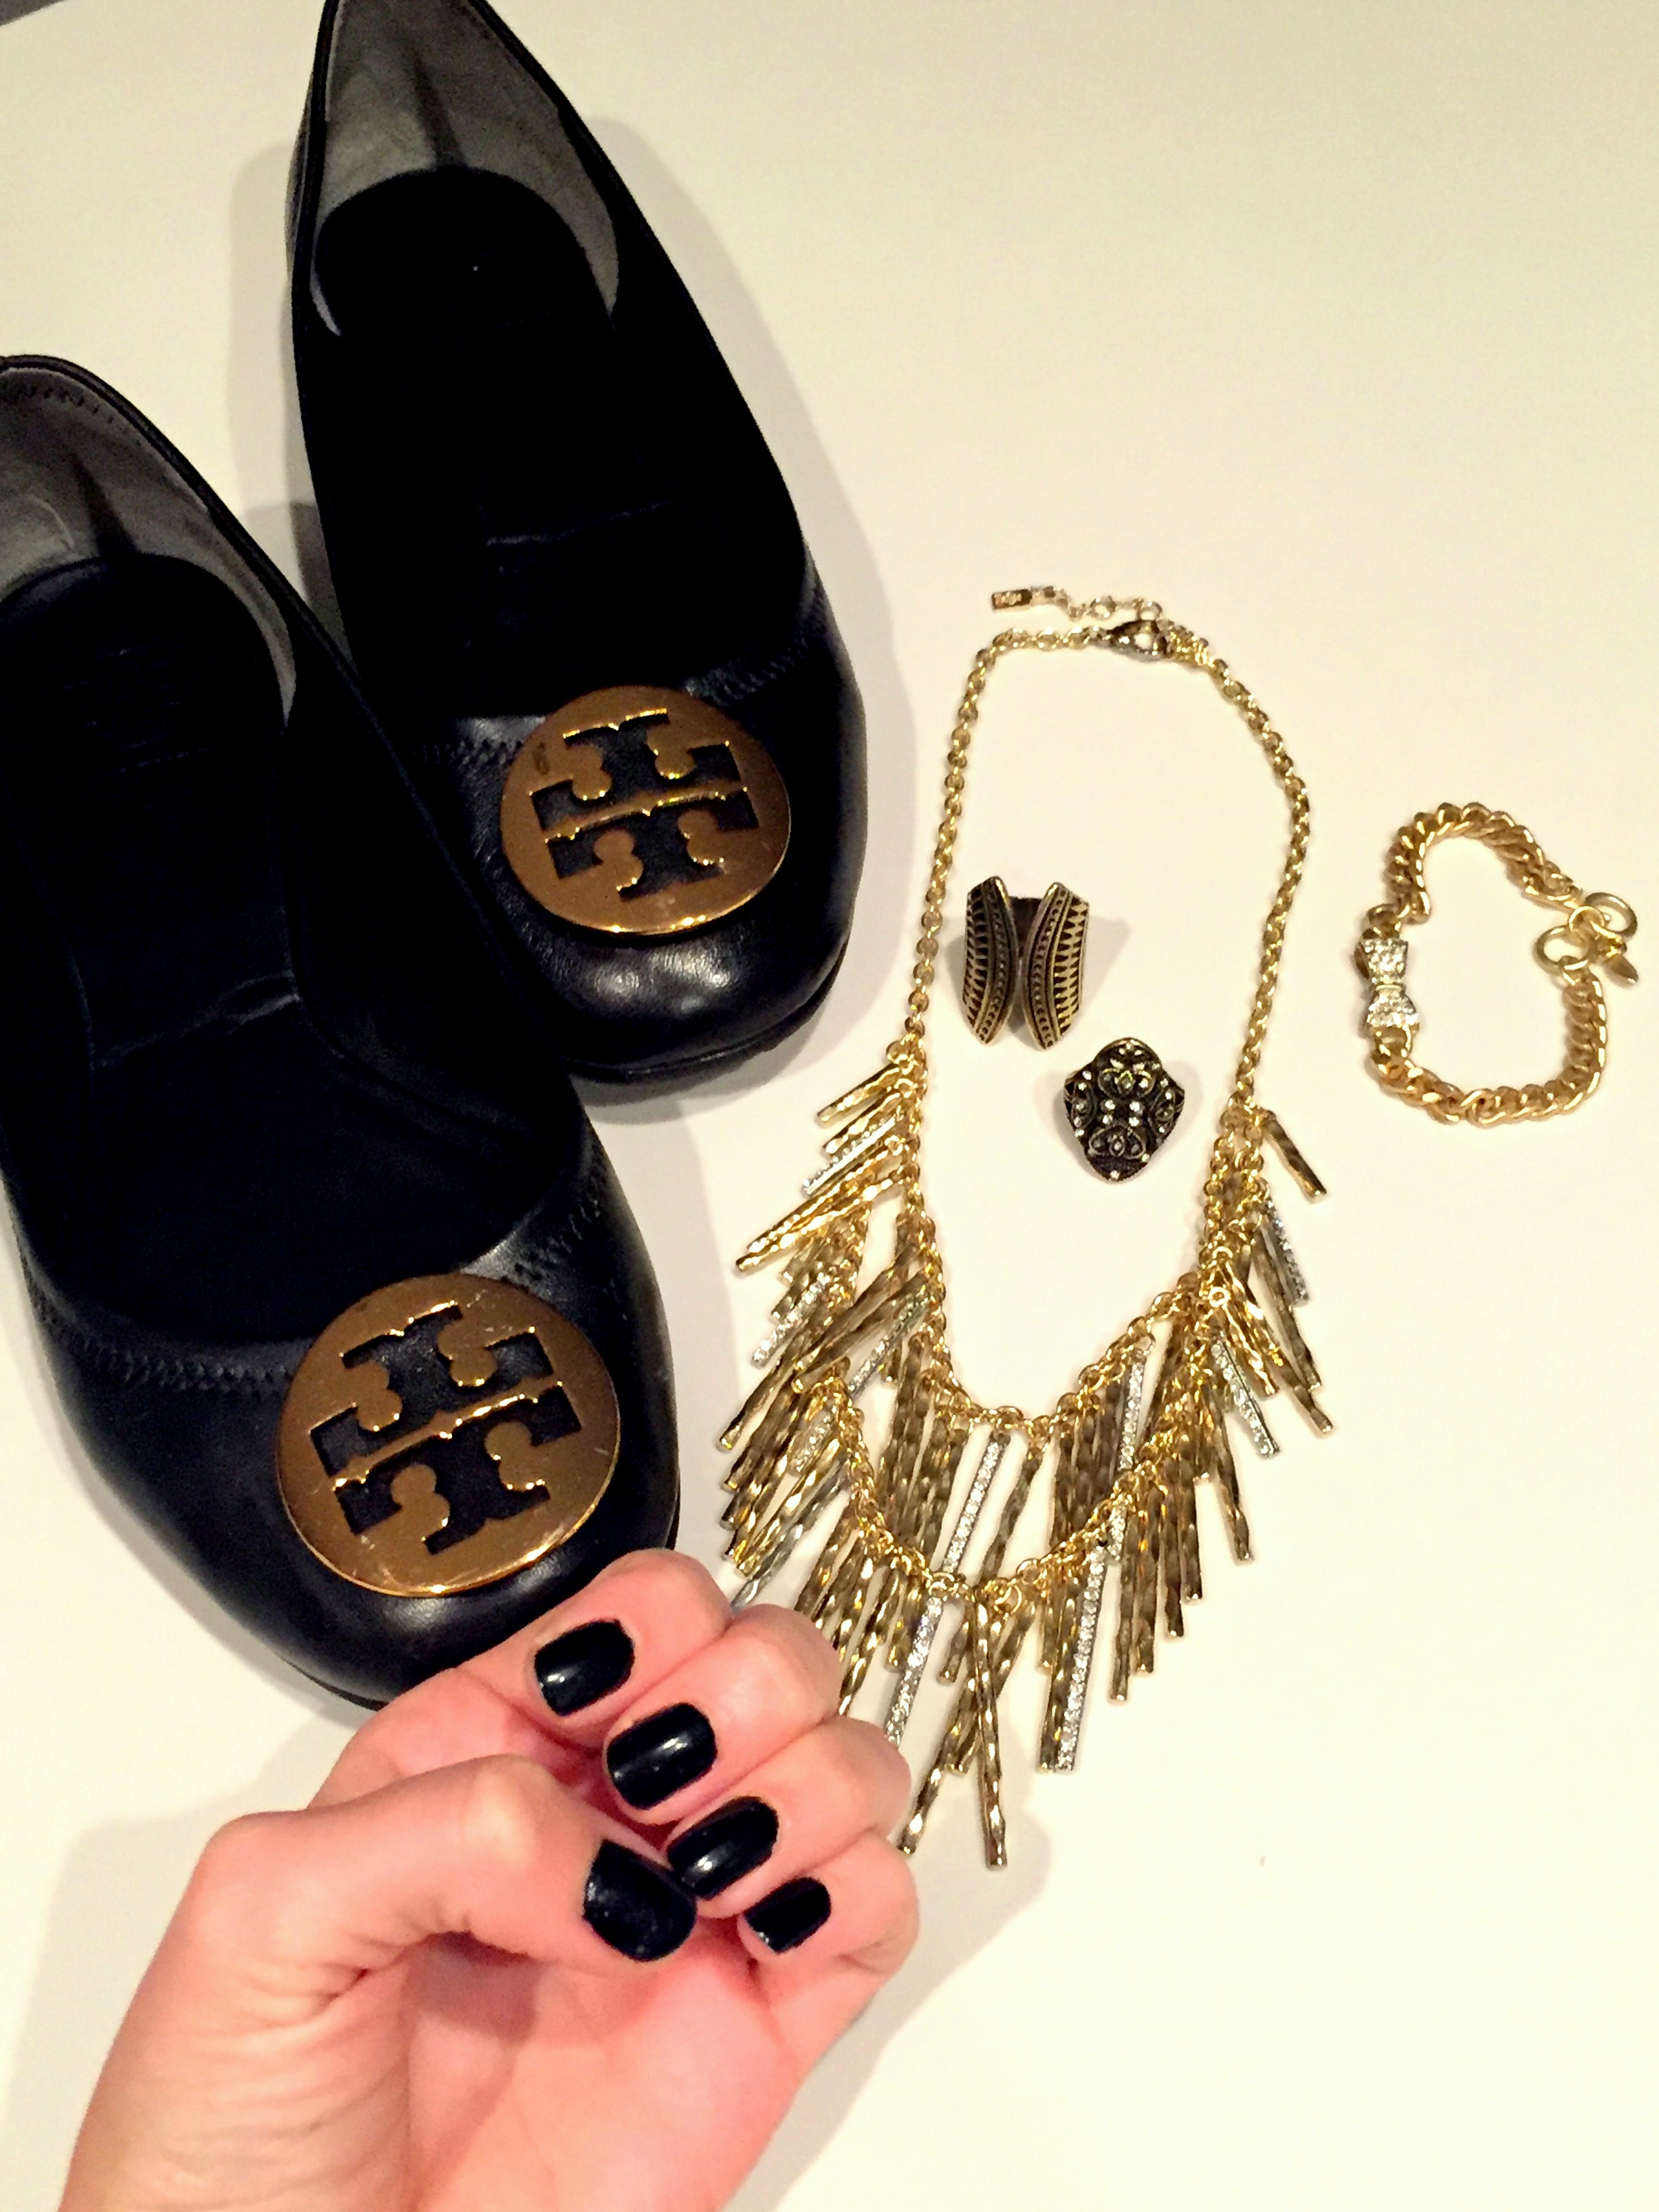 My @toryburch flats and gold jewelry pair for the perfect way to accessorize 💅🏼